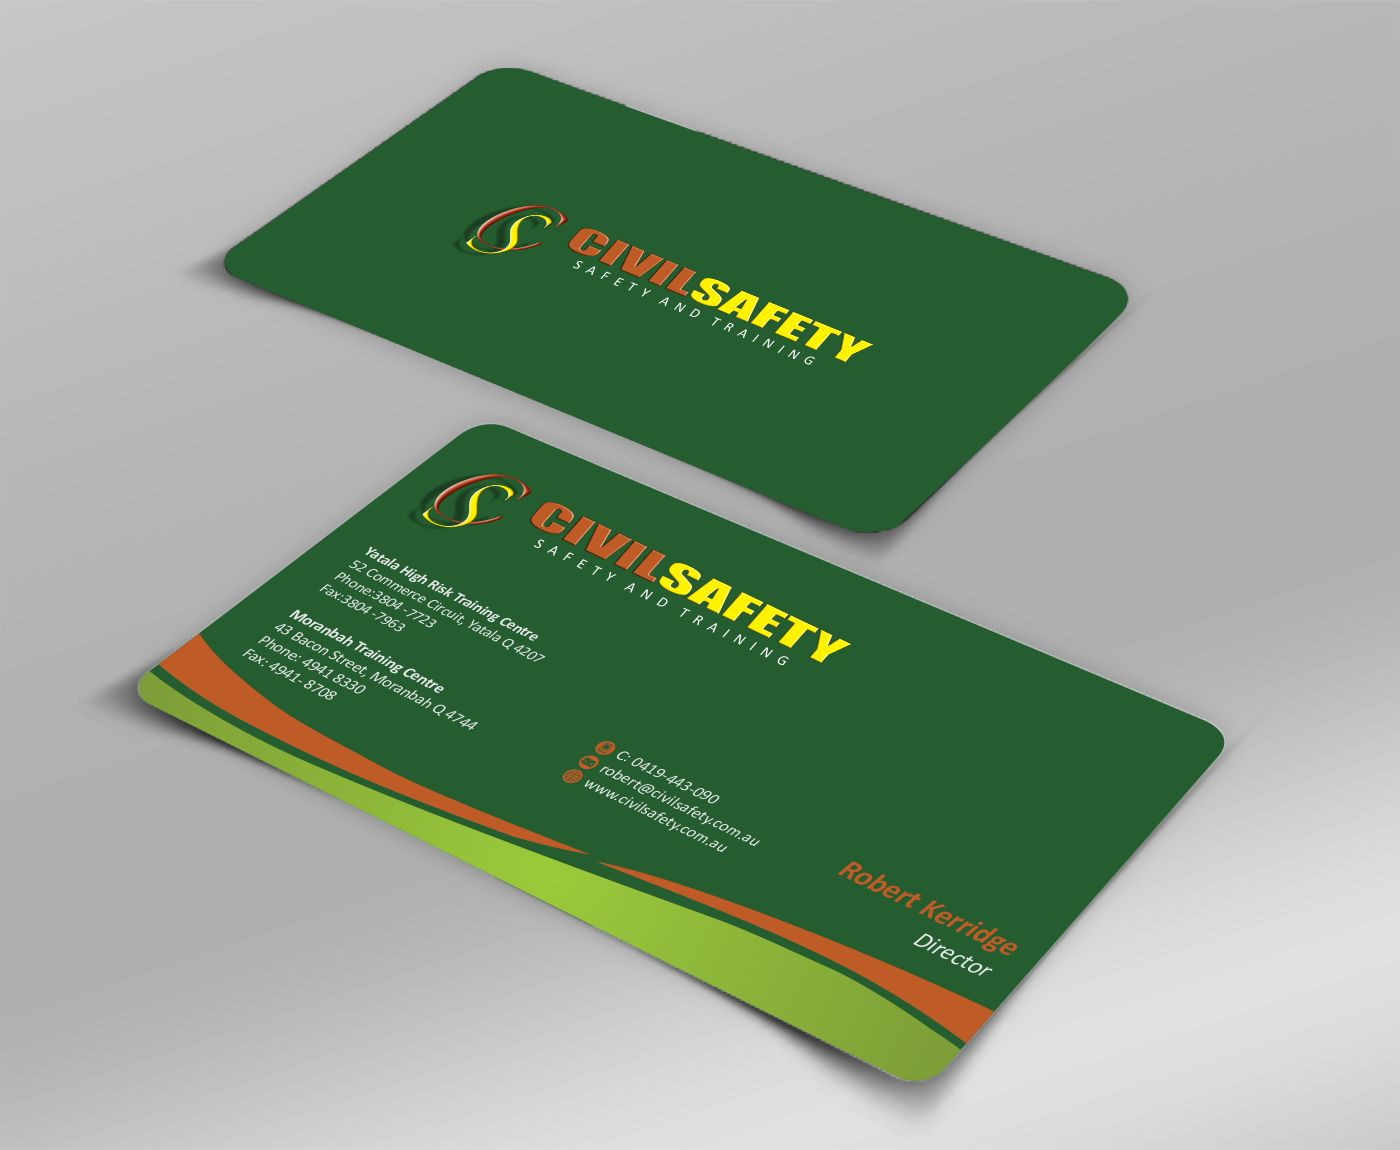 Professional bold training business card design for civil safety business card design by zarnab for civil safety pty ltd design 2757197 reheart